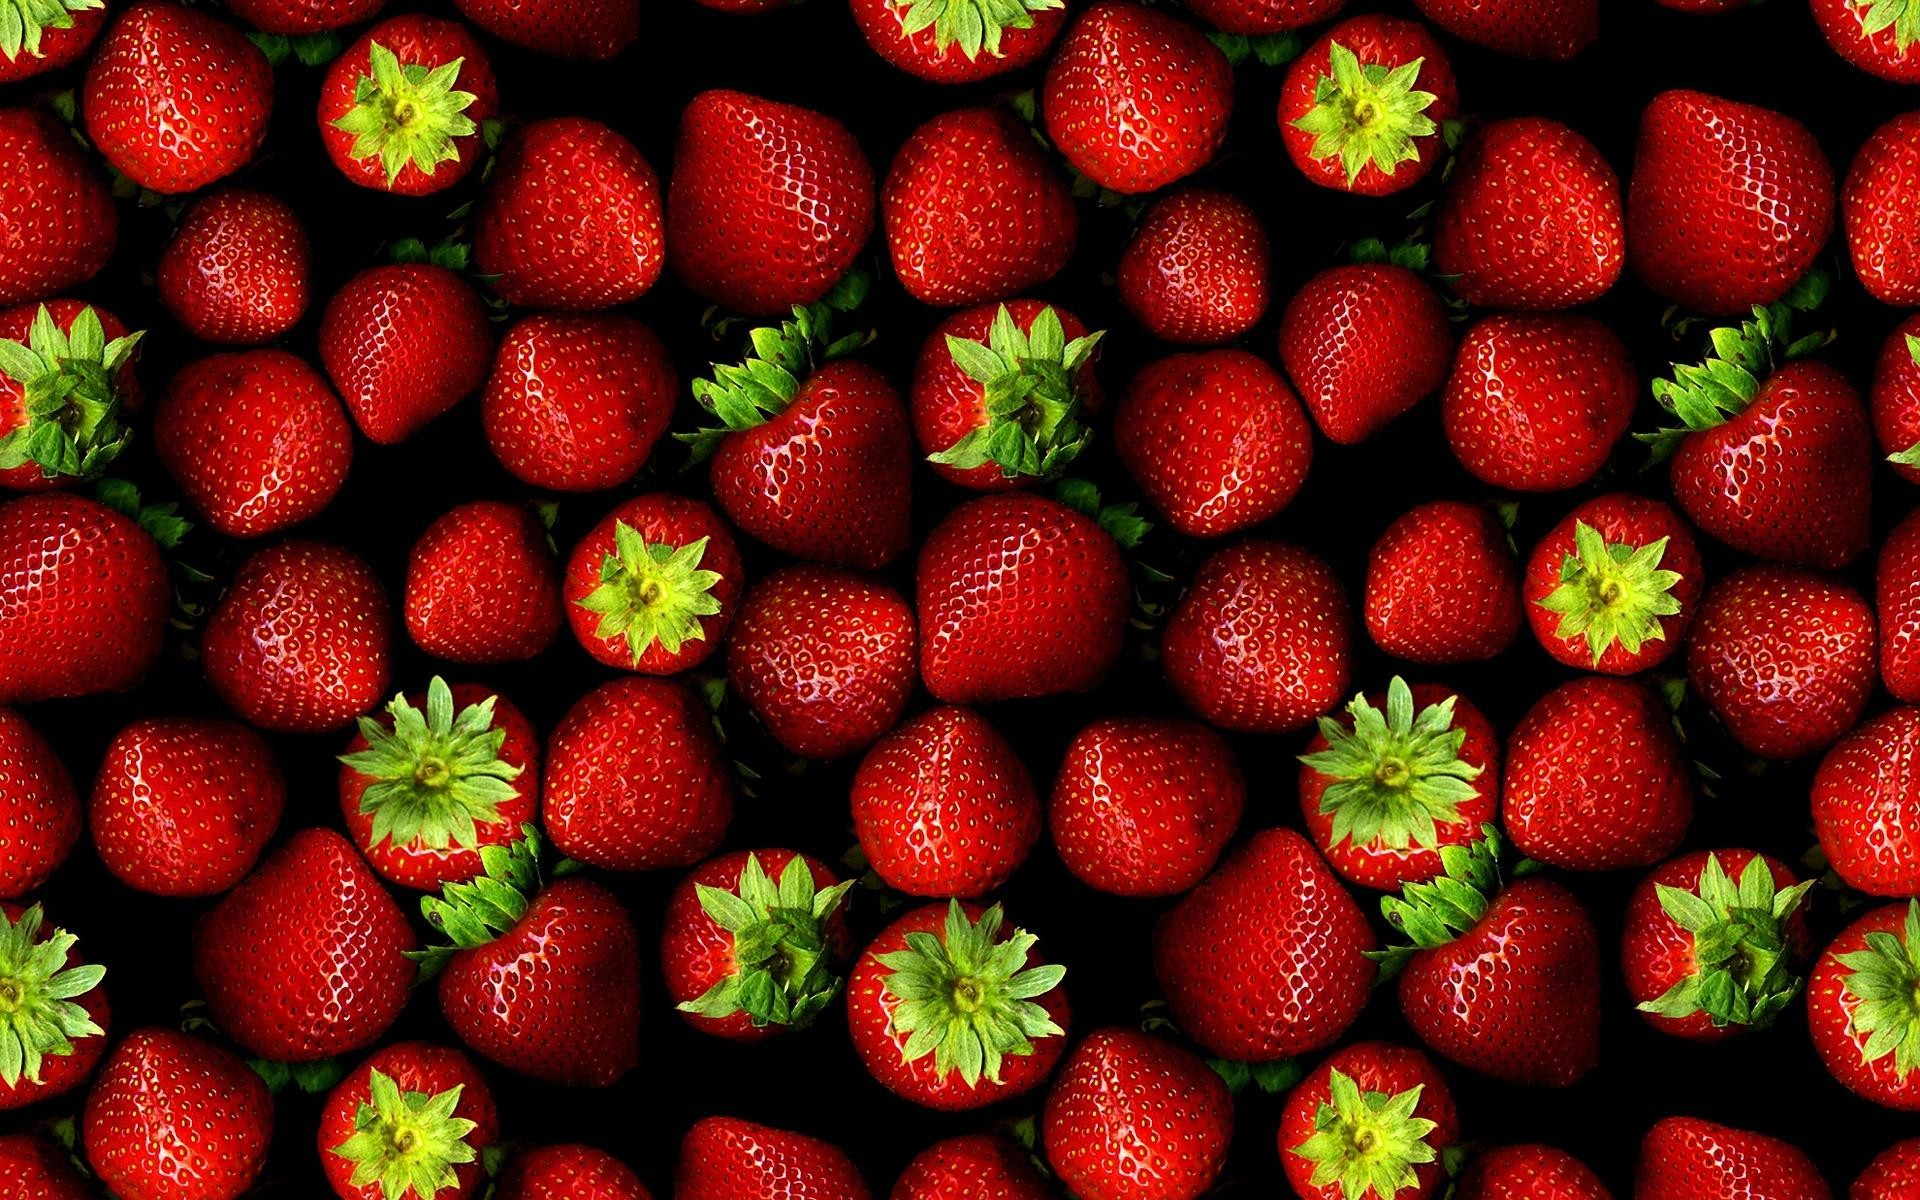 1920x1200 Strawberries images Strawberries HD wallpaper and background photos